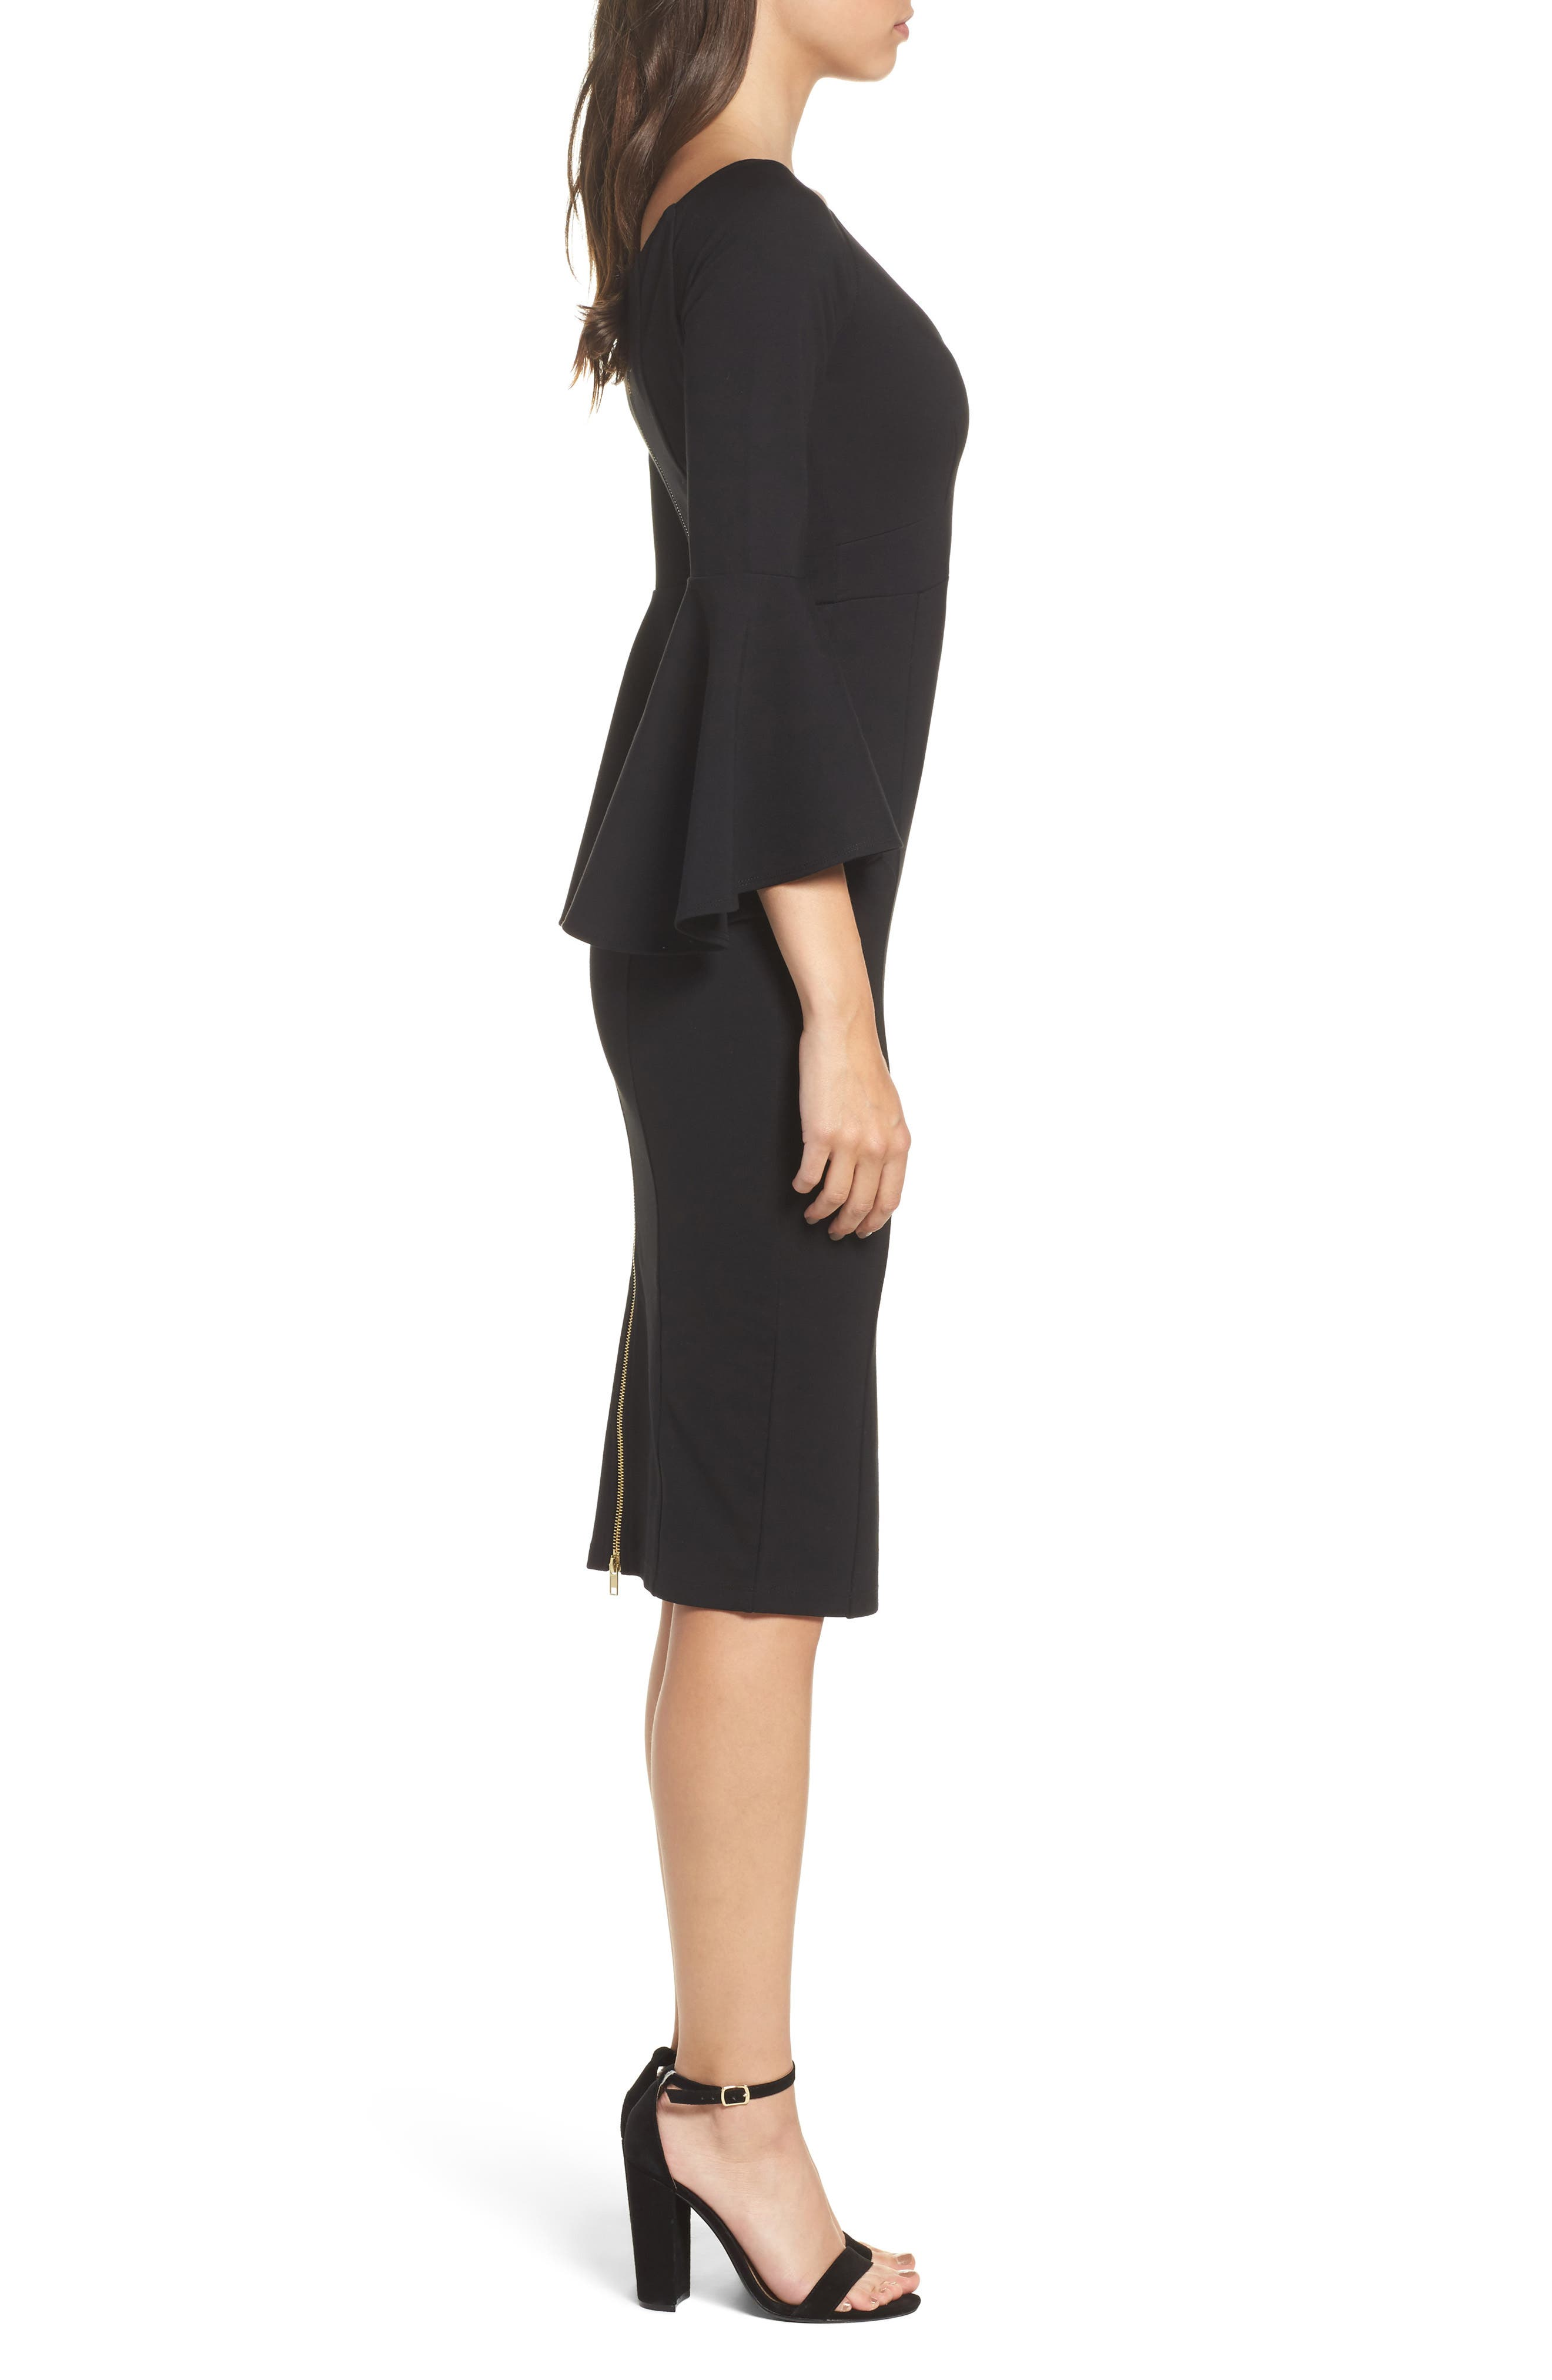 Milly Bell Sleeve Midi Dress,                             Alternate thumbnail 3, color,                             401